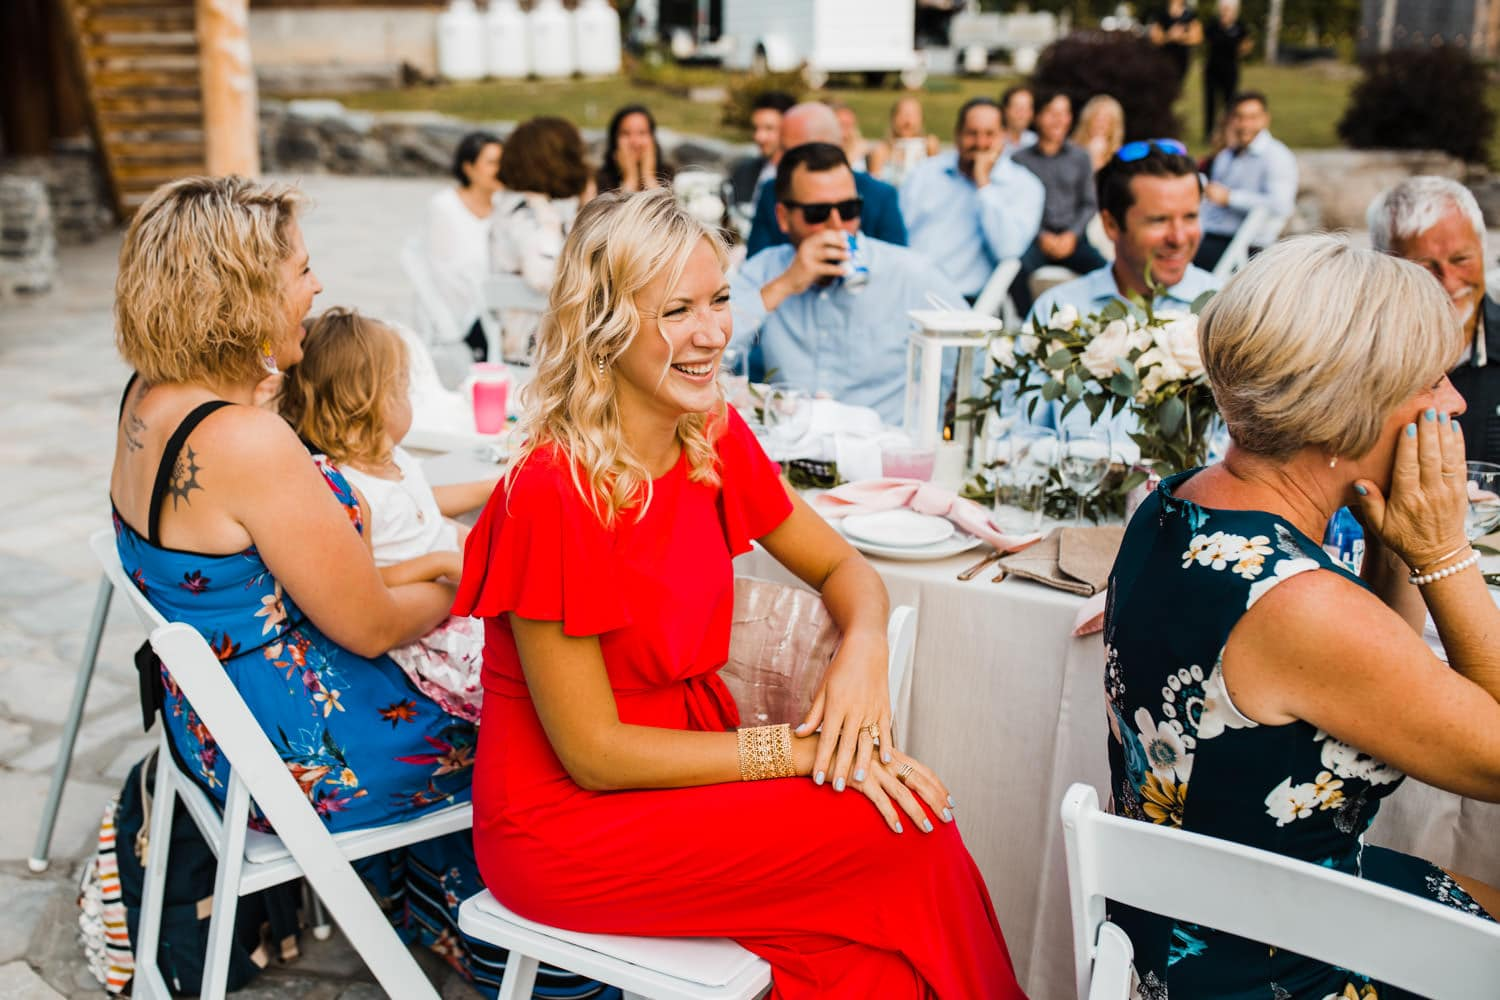 guests react to outdoor surprise wedding